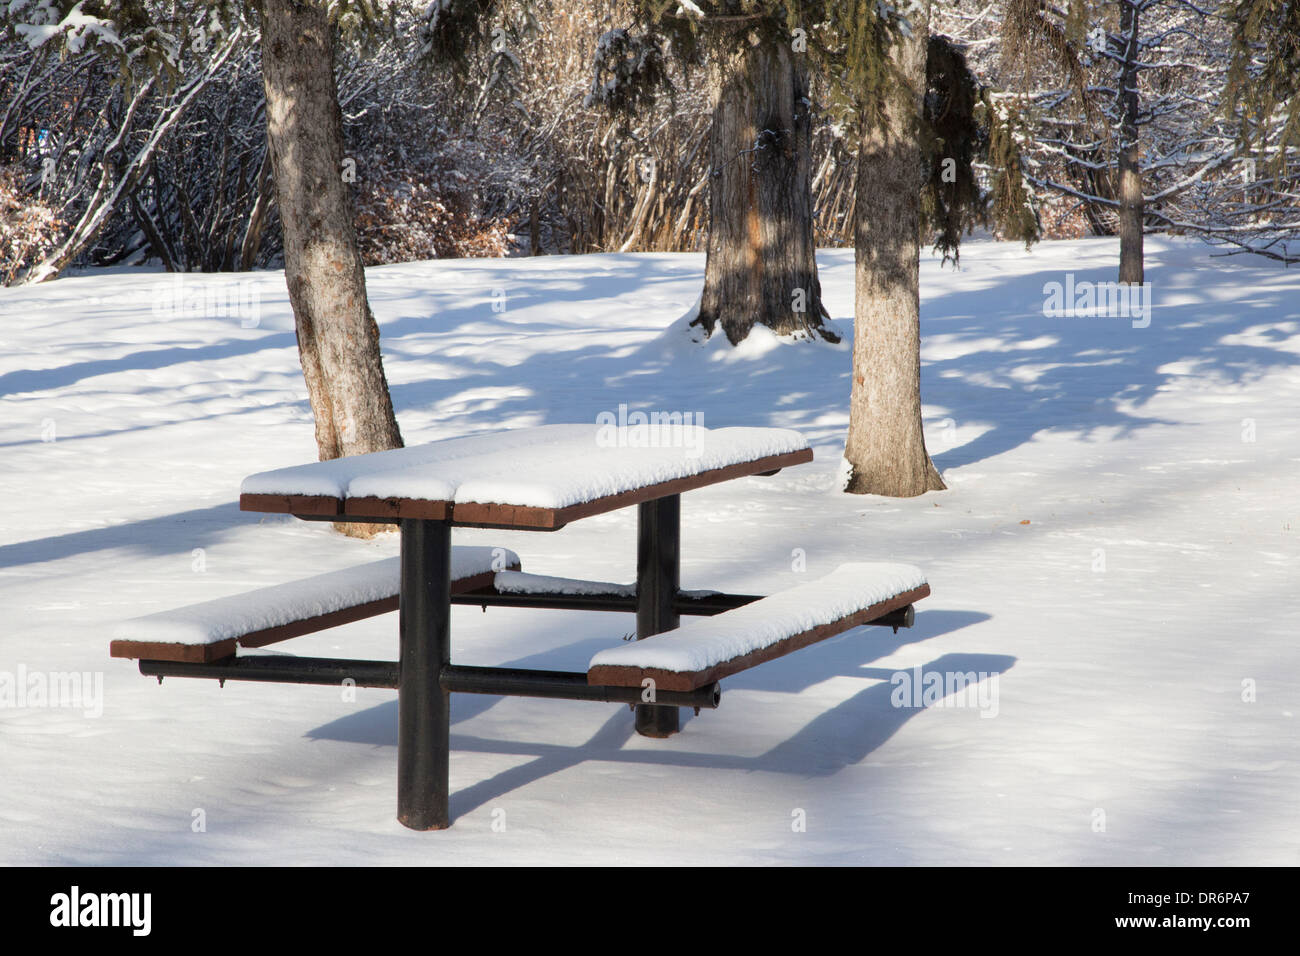 Picnic Table Covered By Snow Stock Photo Royalty Free